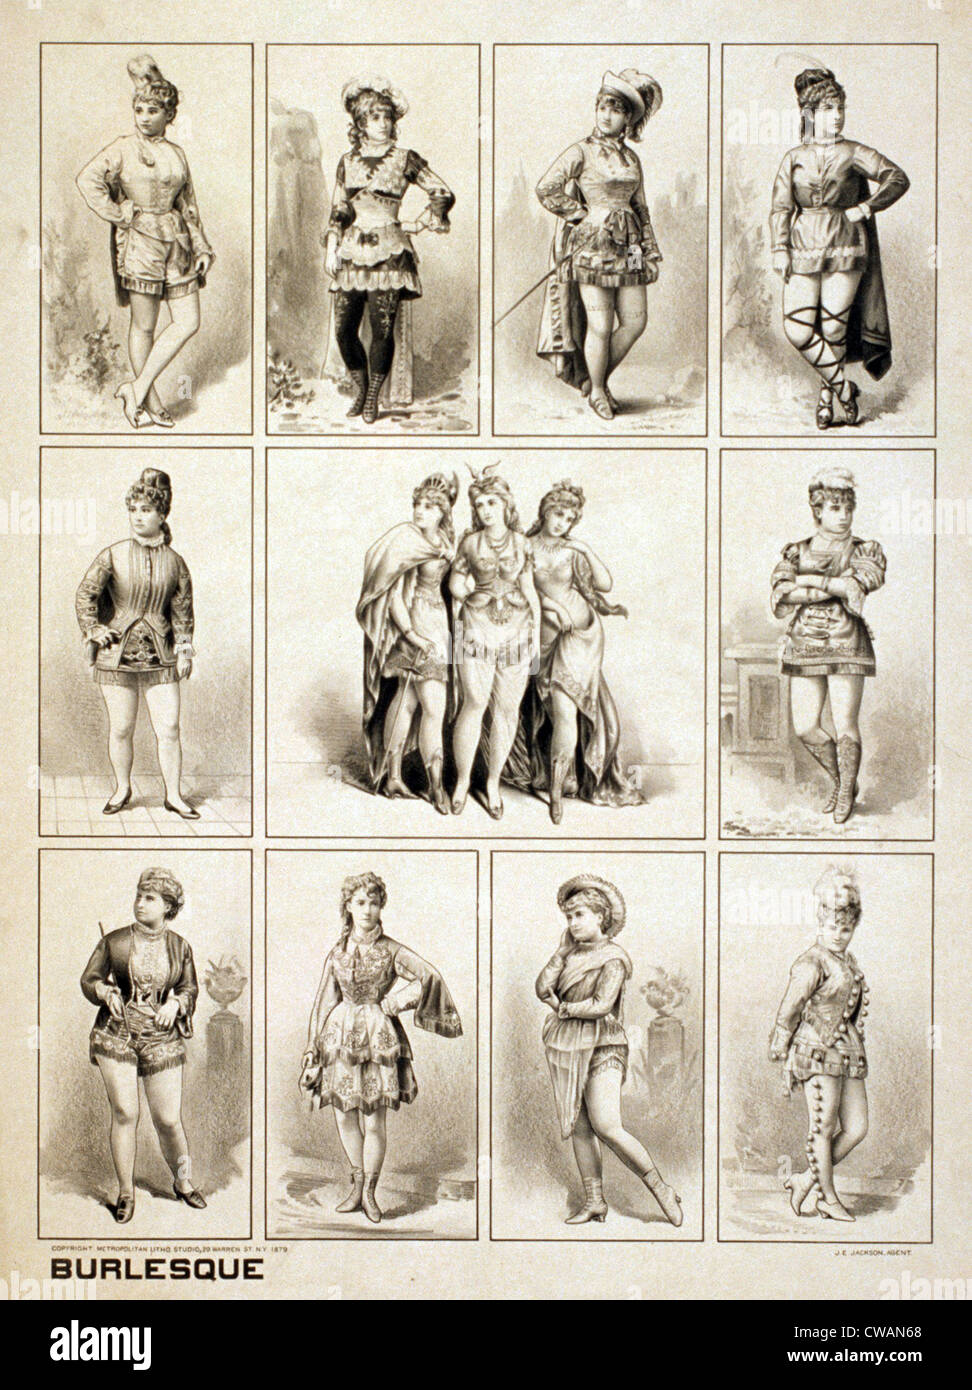 Early burlesque women performers wear revealing tights while playing men's roles making fun of (or burlesquing) - Stock Image